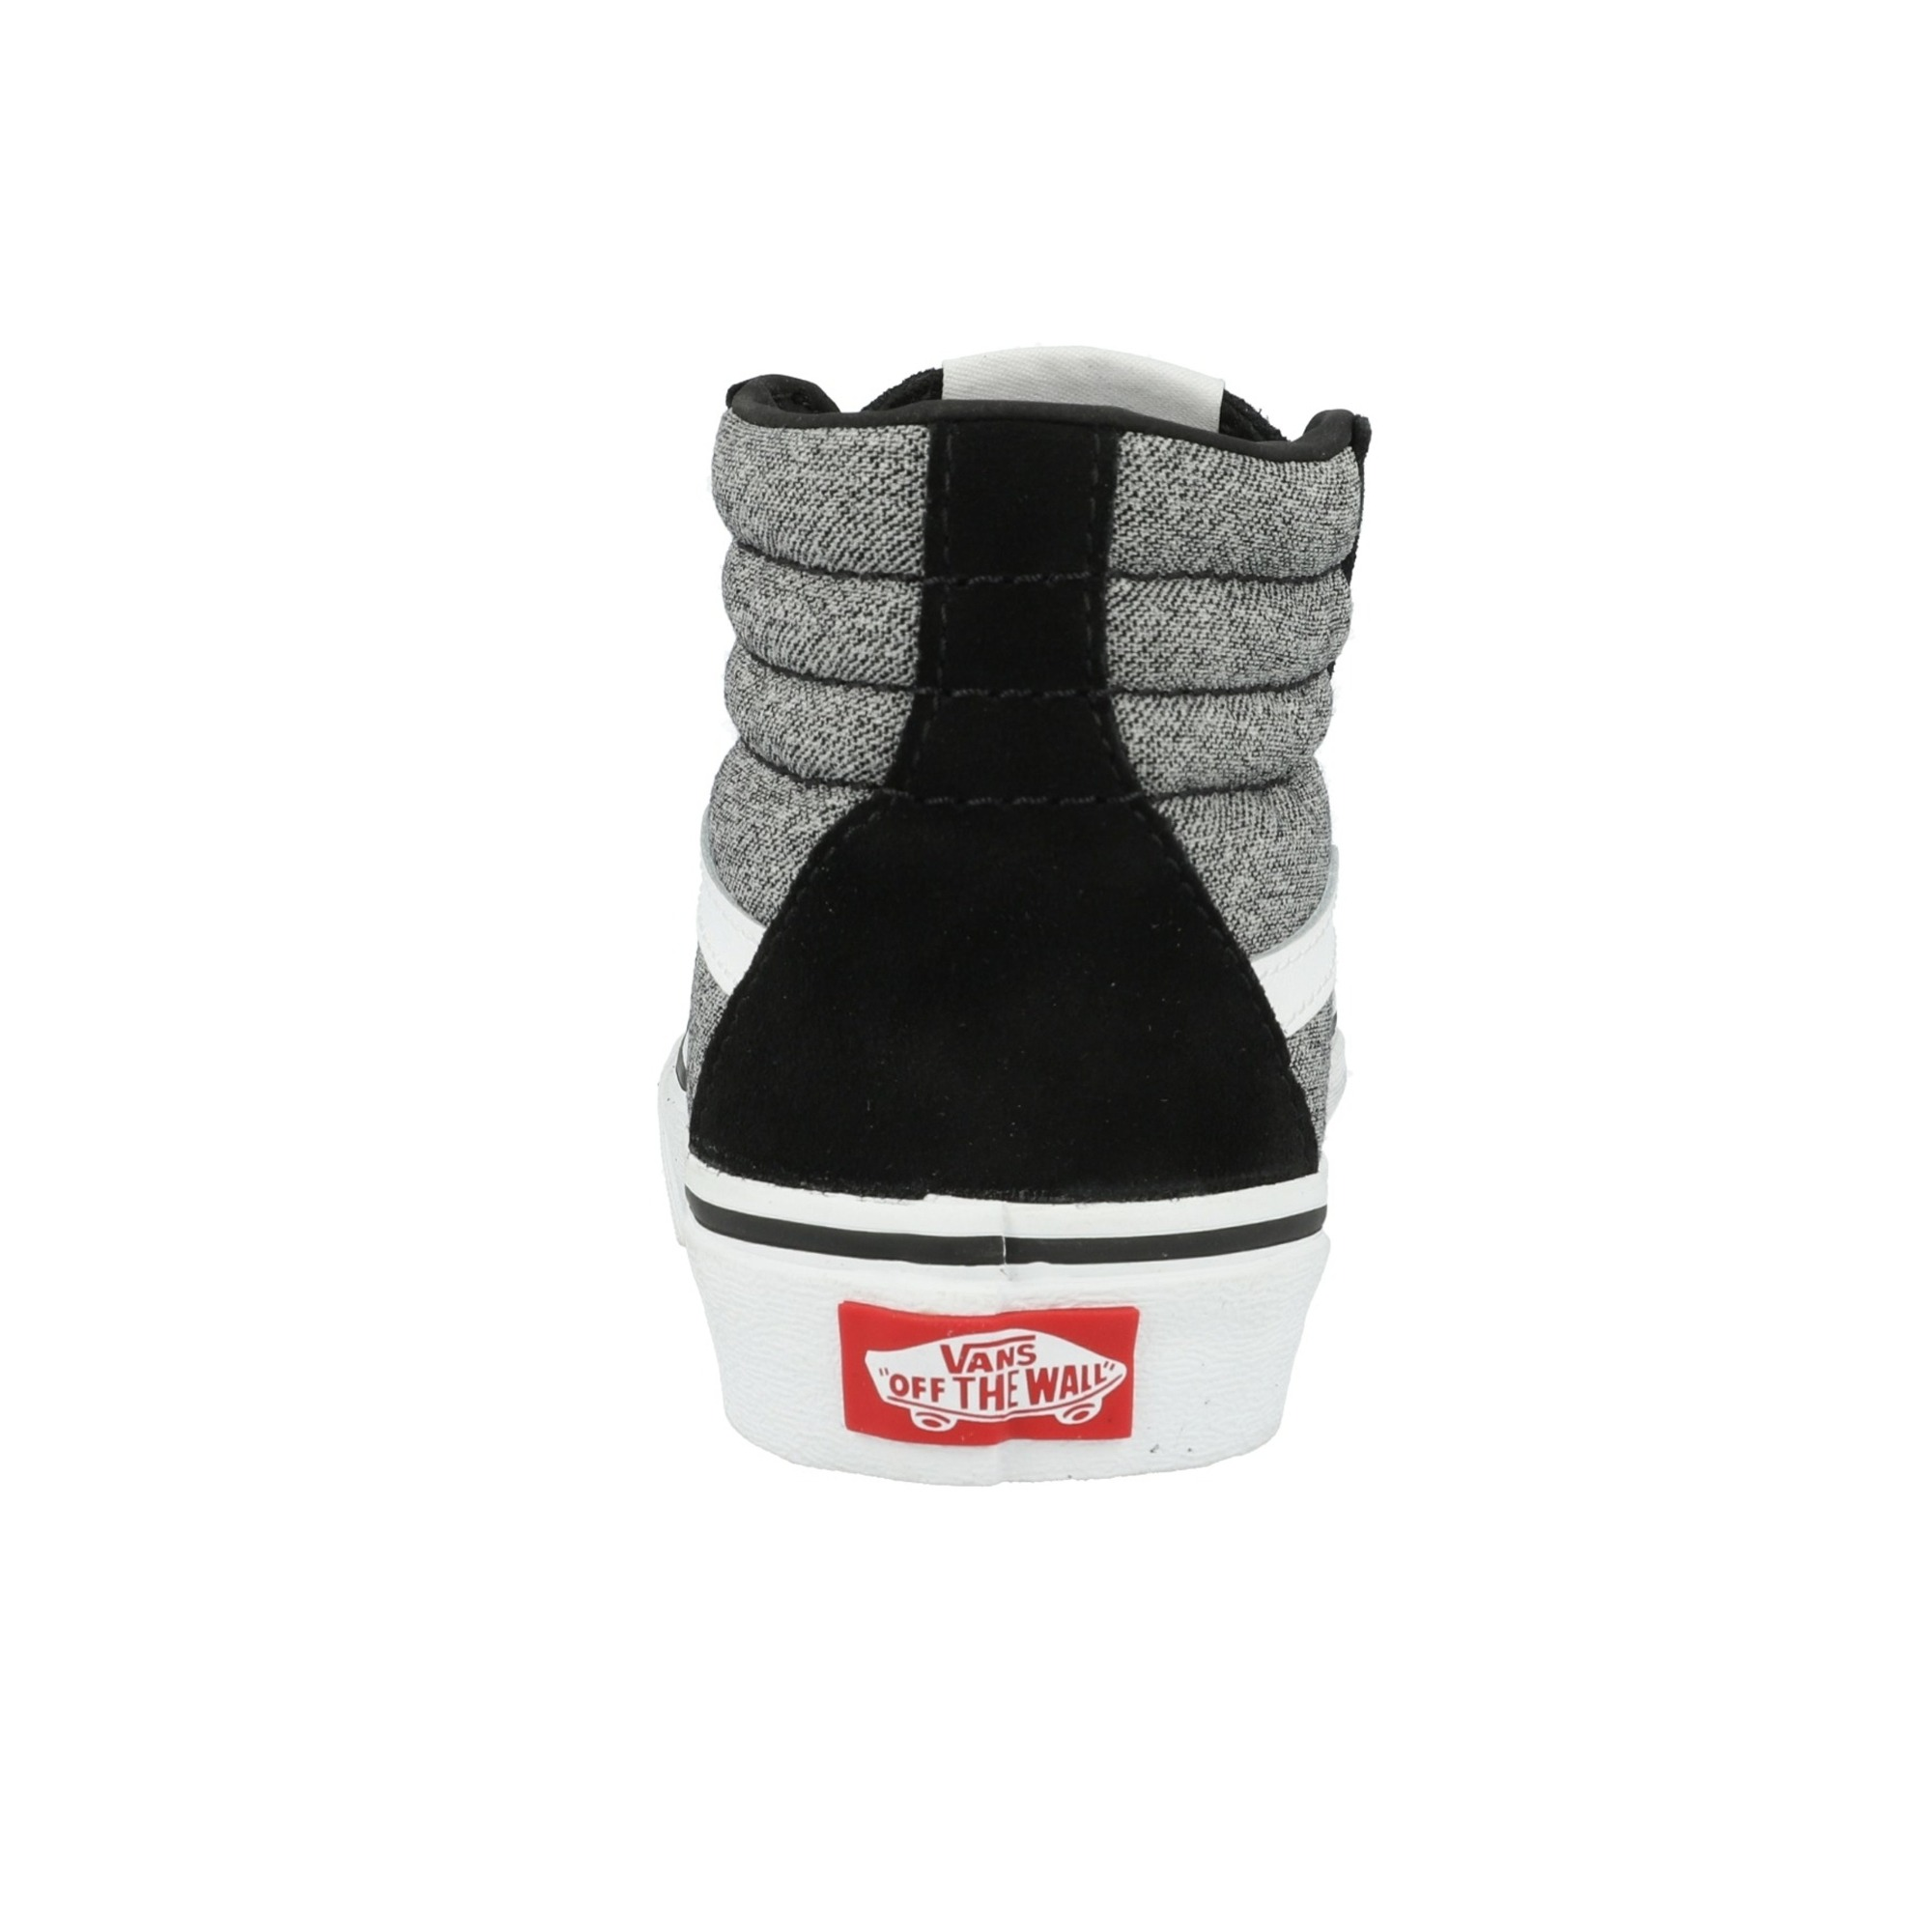 vans-uy-sk8-hi-suiting-black-suede back view